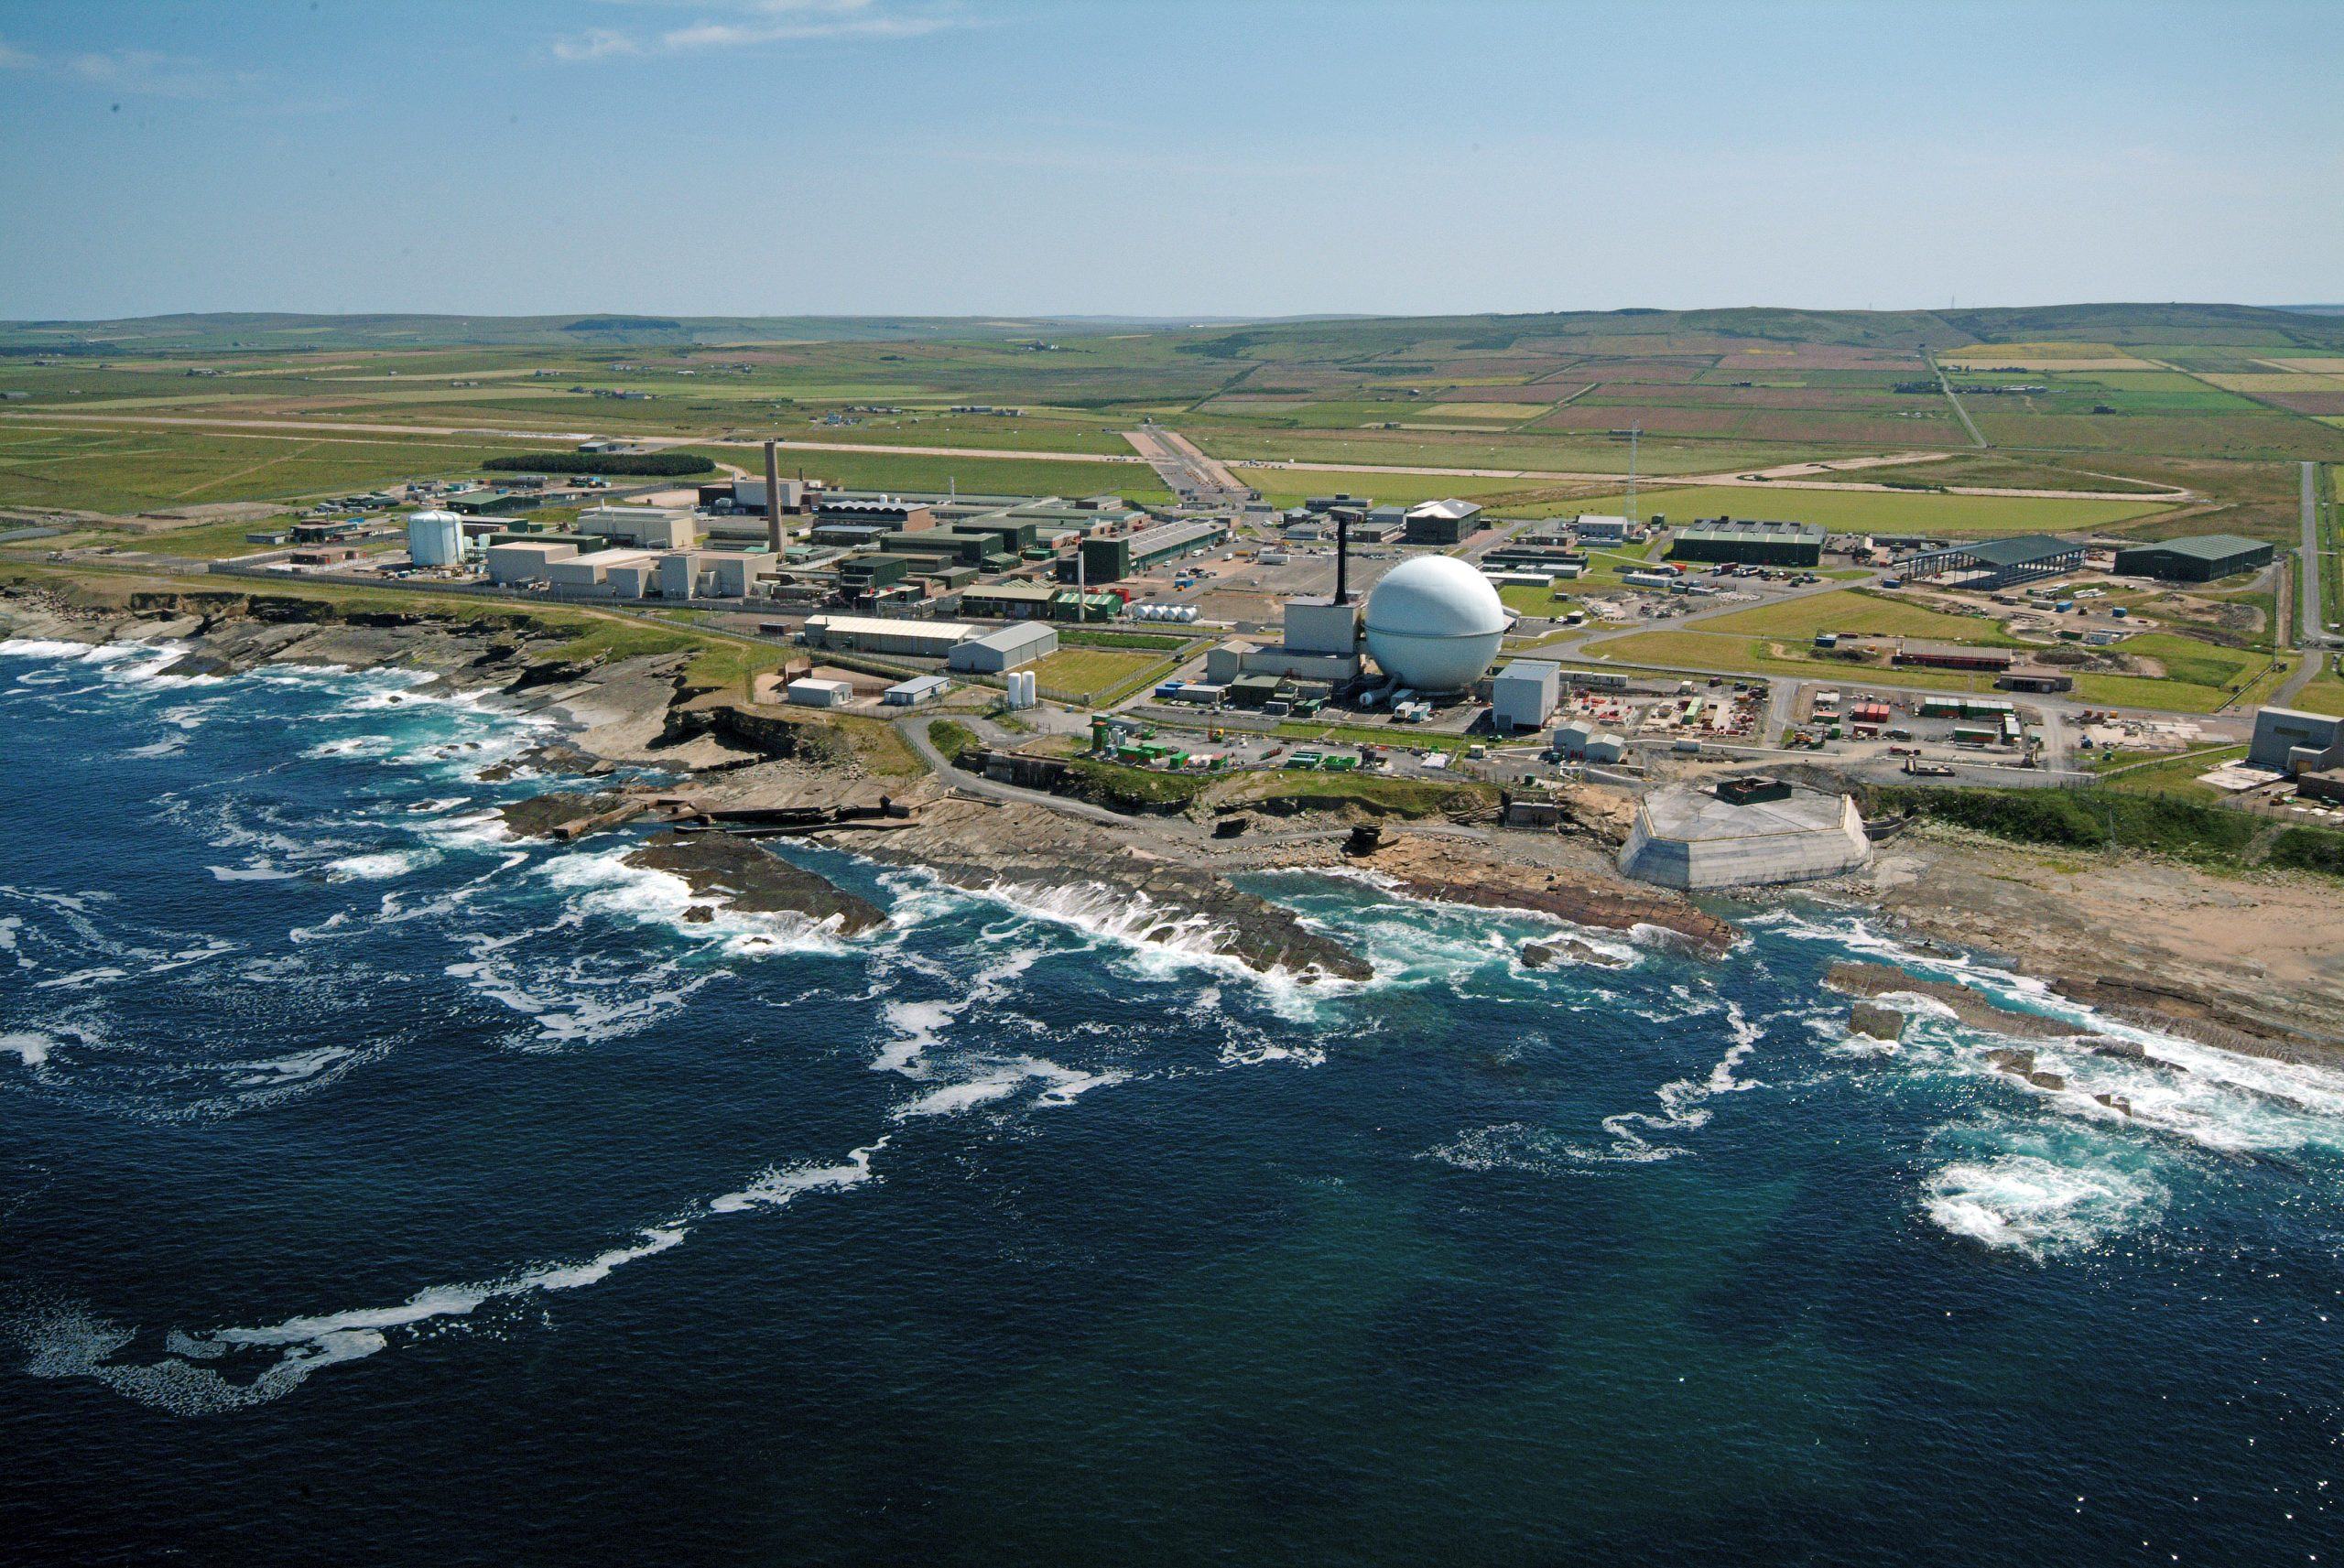 GRAHAM underway with 'world's deepest nuclear clean-up' at Dounreay